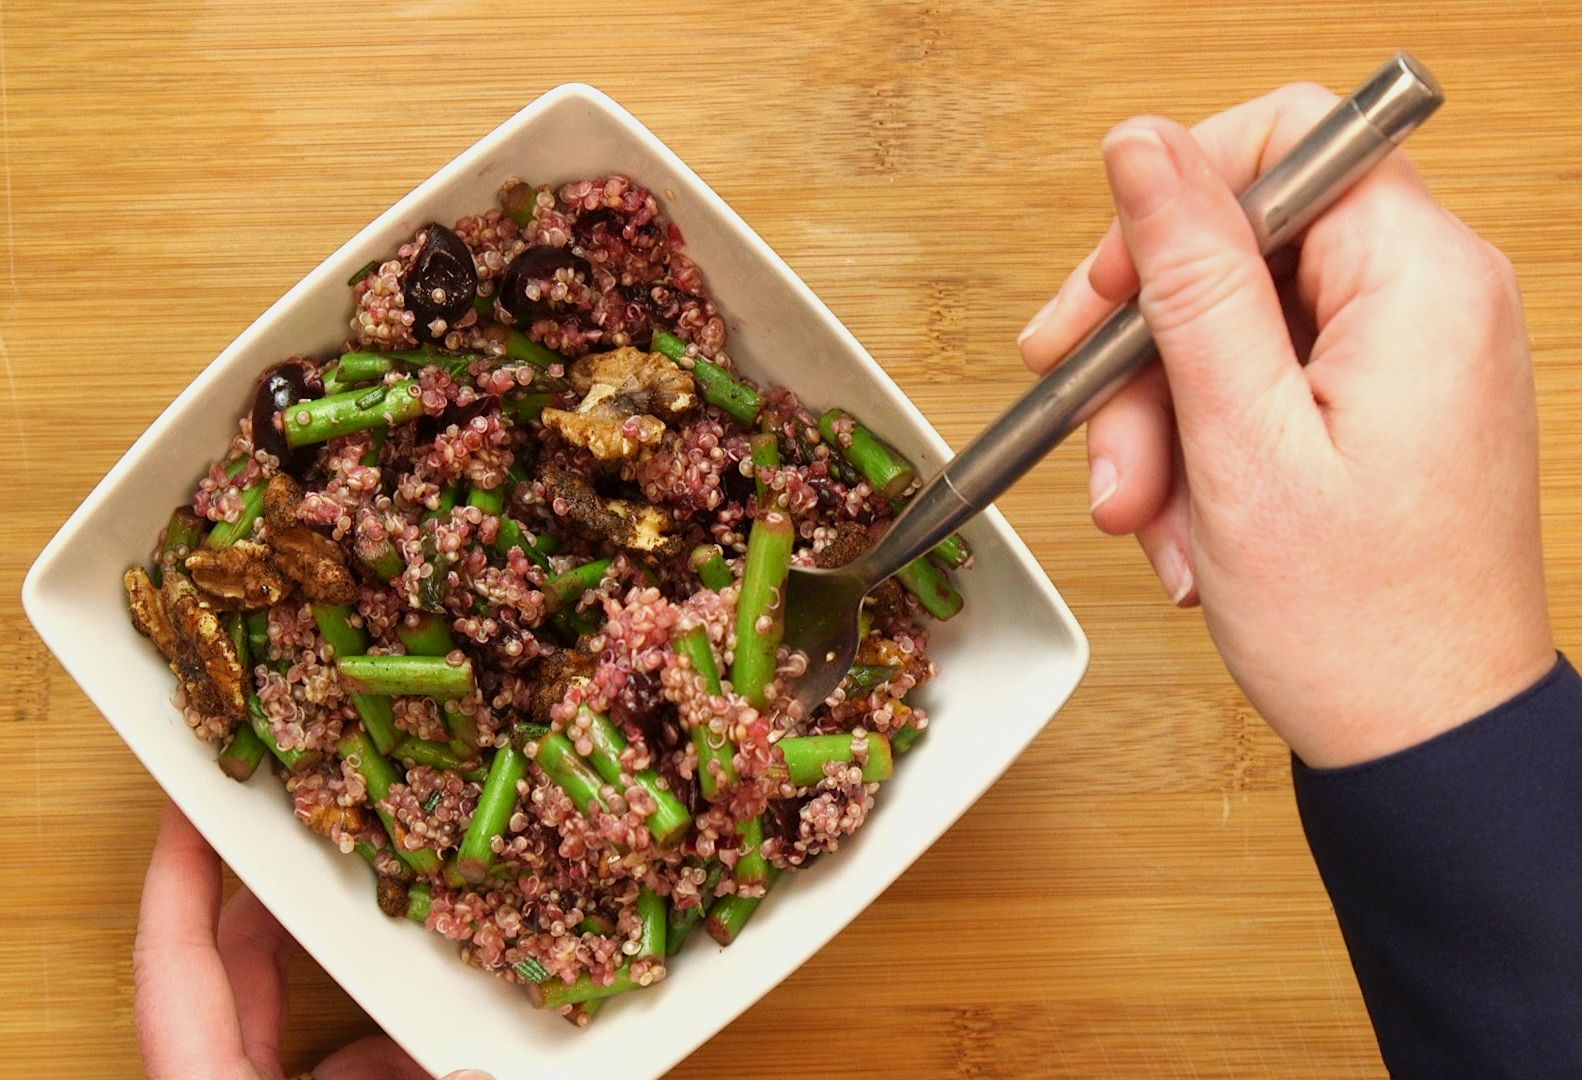 Quinoa salad with toasted walnuts and asparagus sits in a square white bowl on a wooden table. A hand holding a fork scoops some salad from the bowl.